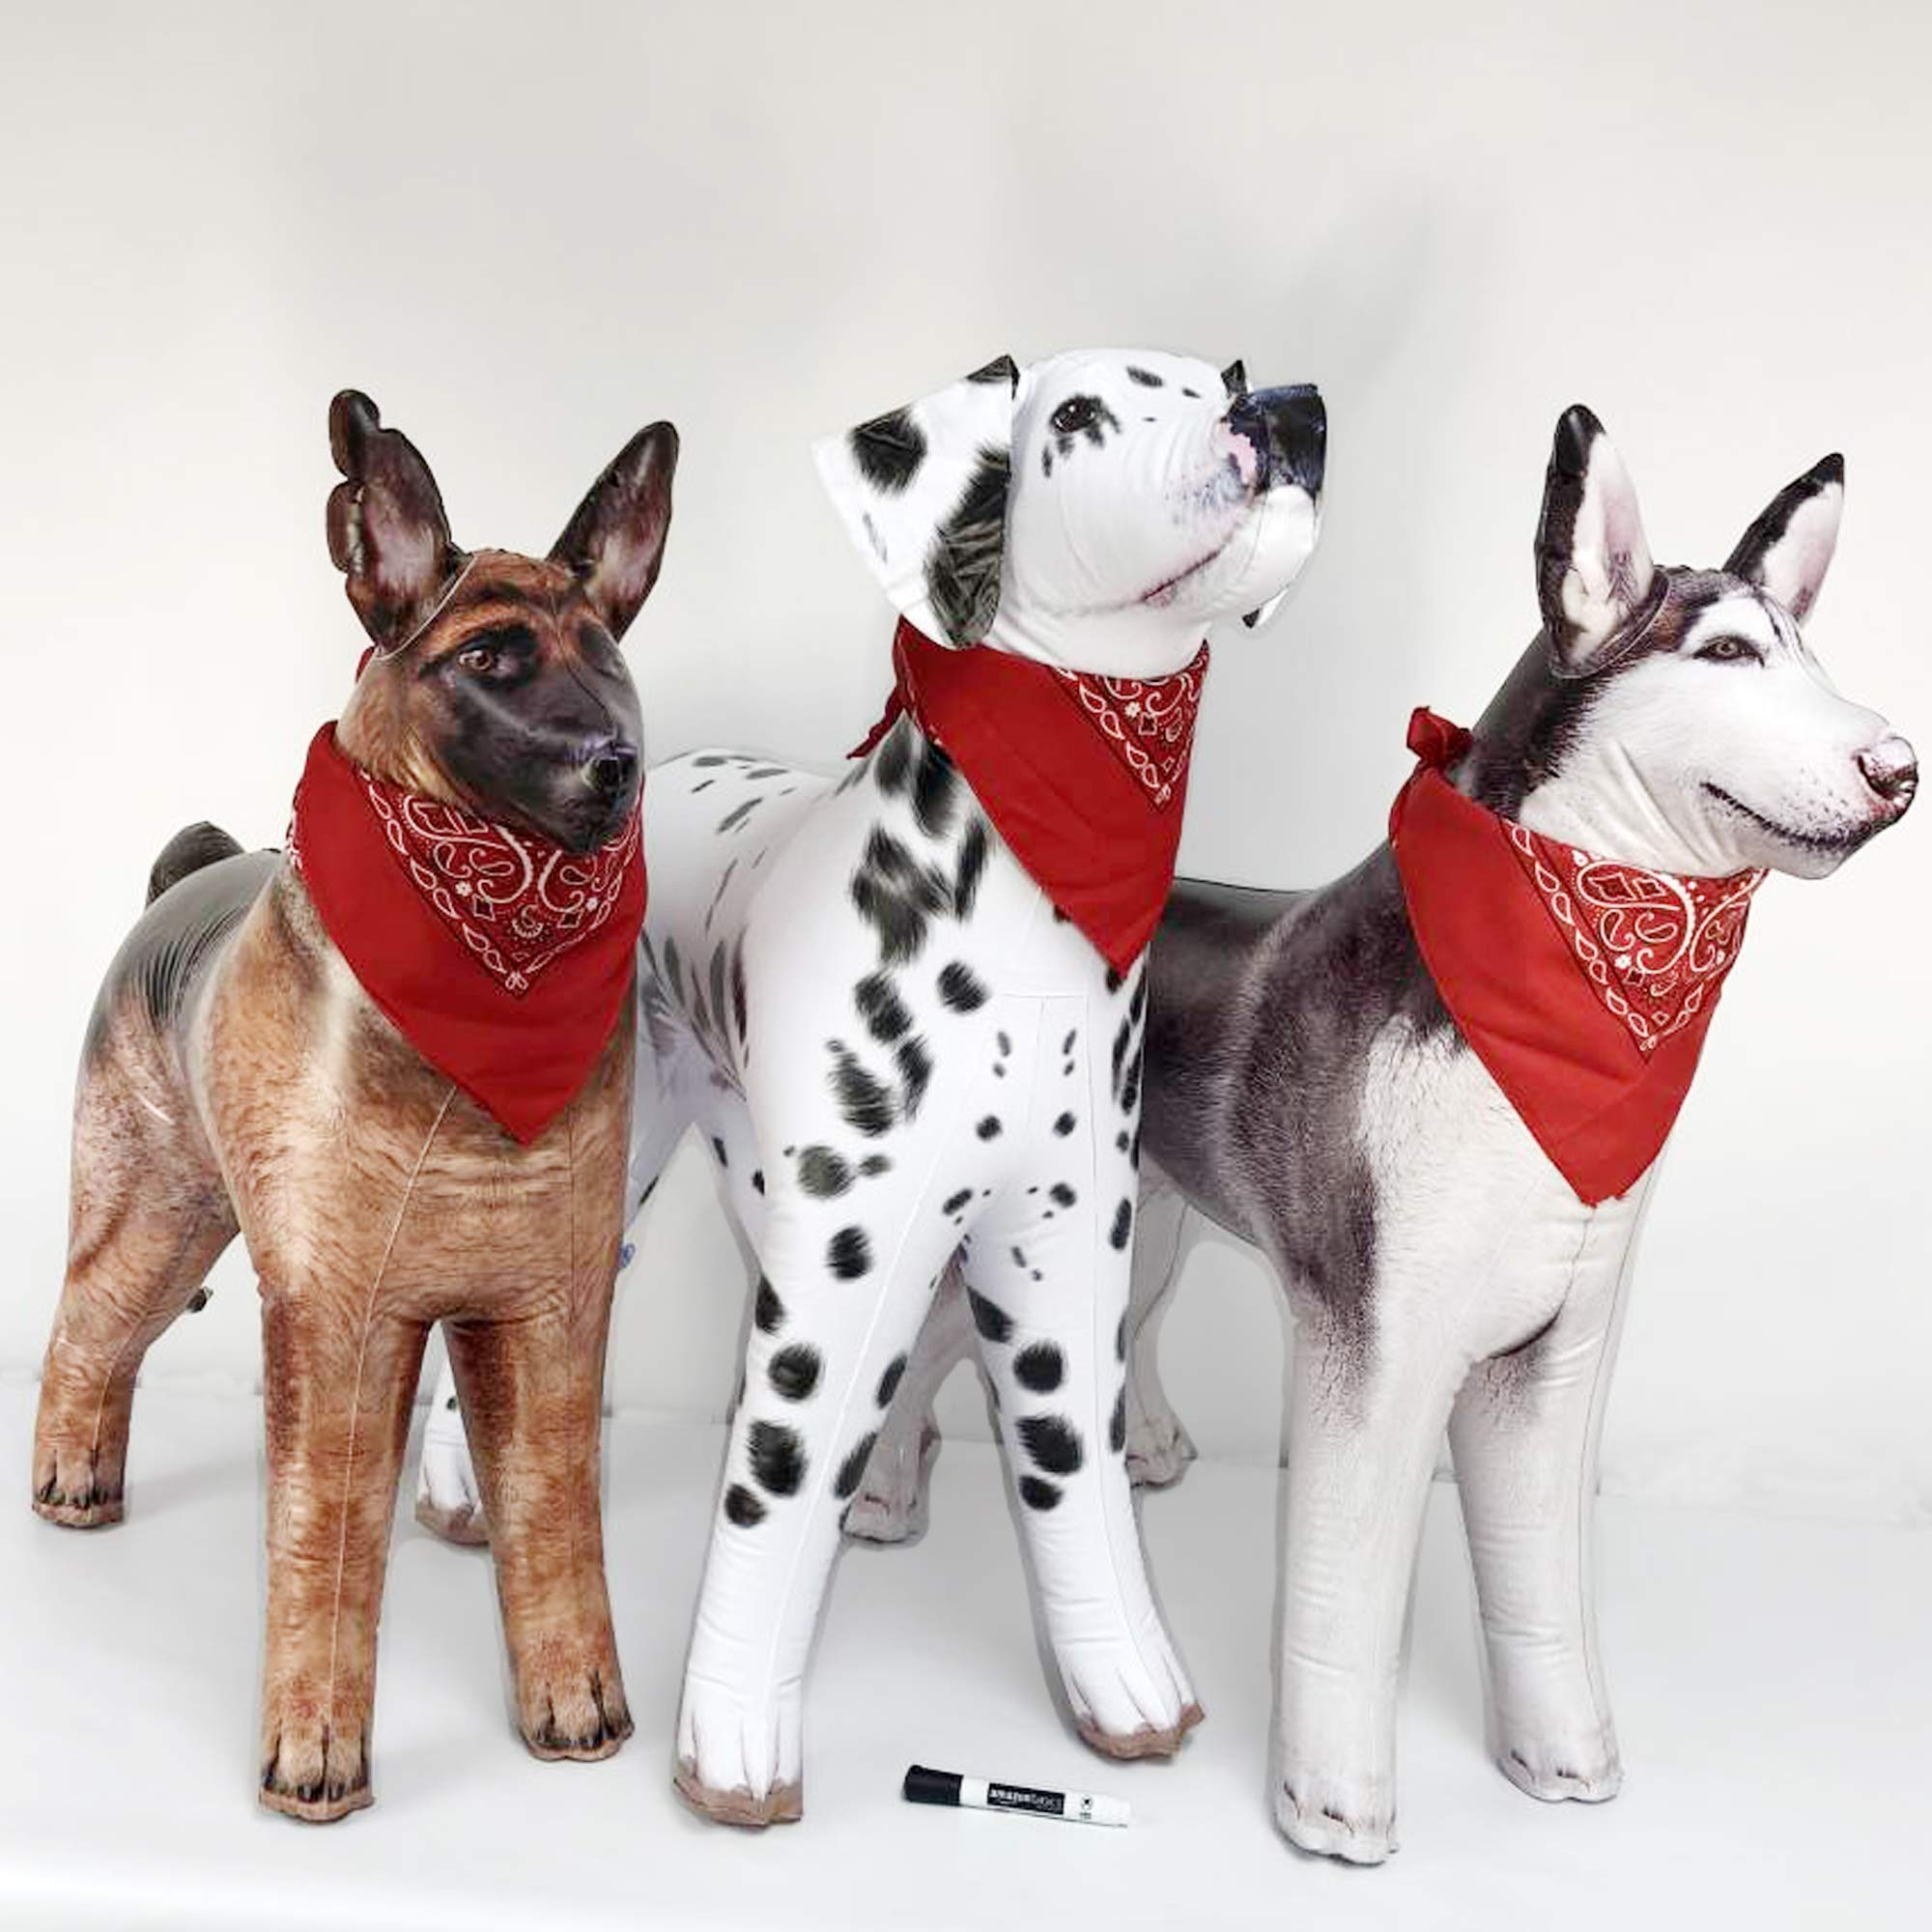 Jet Creations Inflatable Dalmatian Dog Husky German Shepherd 3 Pack Inflatable Stuffed Animal Plush Plus 3 Bandana 1 Marker. Size 32 to 41 inch Long.  JC-3DOGZZ by Jet Creations